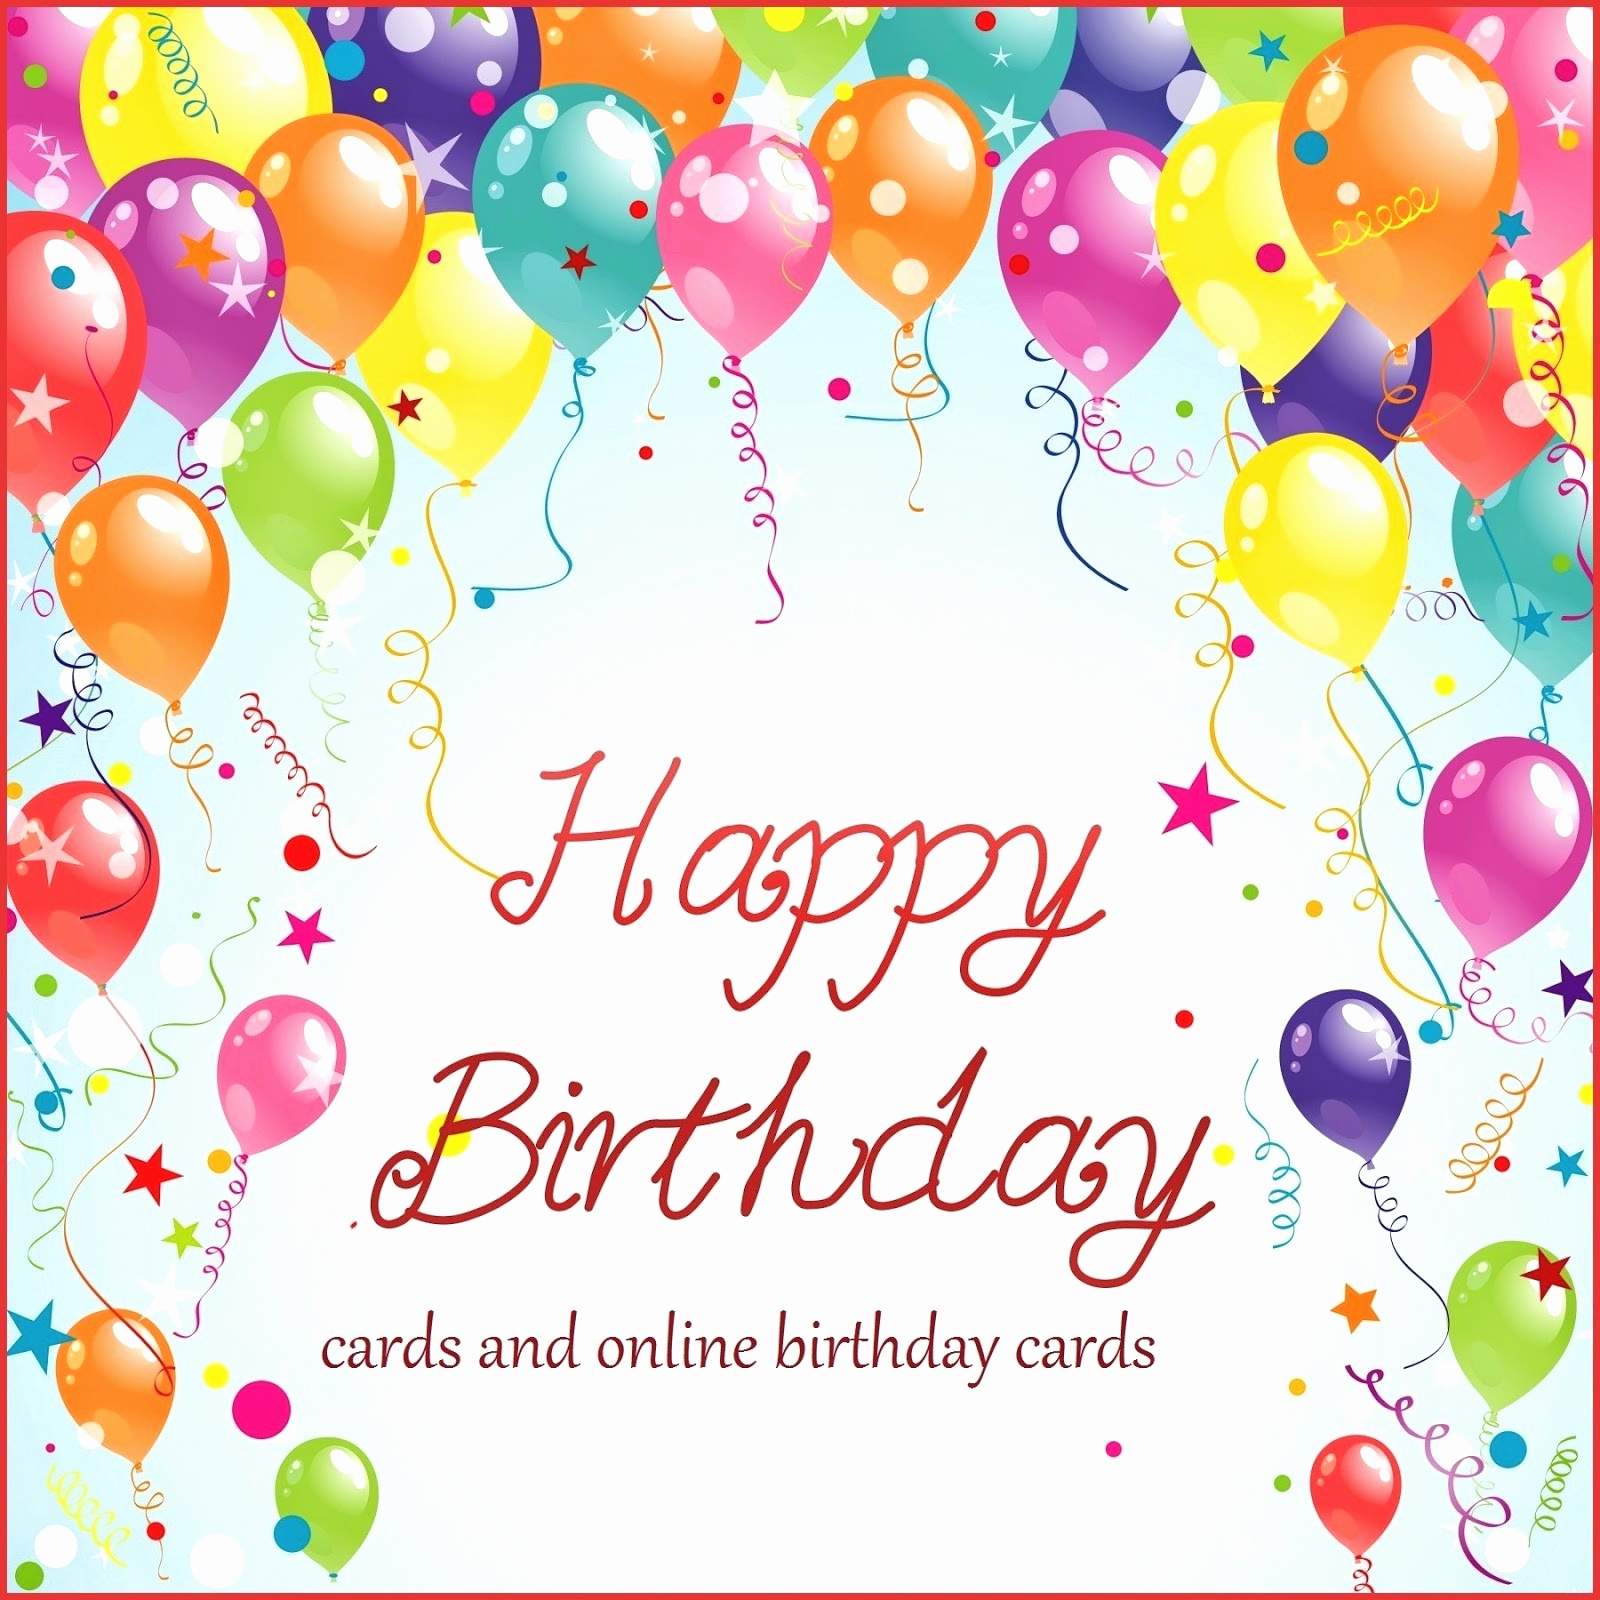 create birthday card online with name free ; birthday-cards-with-name-and-photo-editor-online-beautiful-66-lovely-create-happy-birthday-card-with-name-free-of-birthday-cards-with-name-and-photo-editor-online